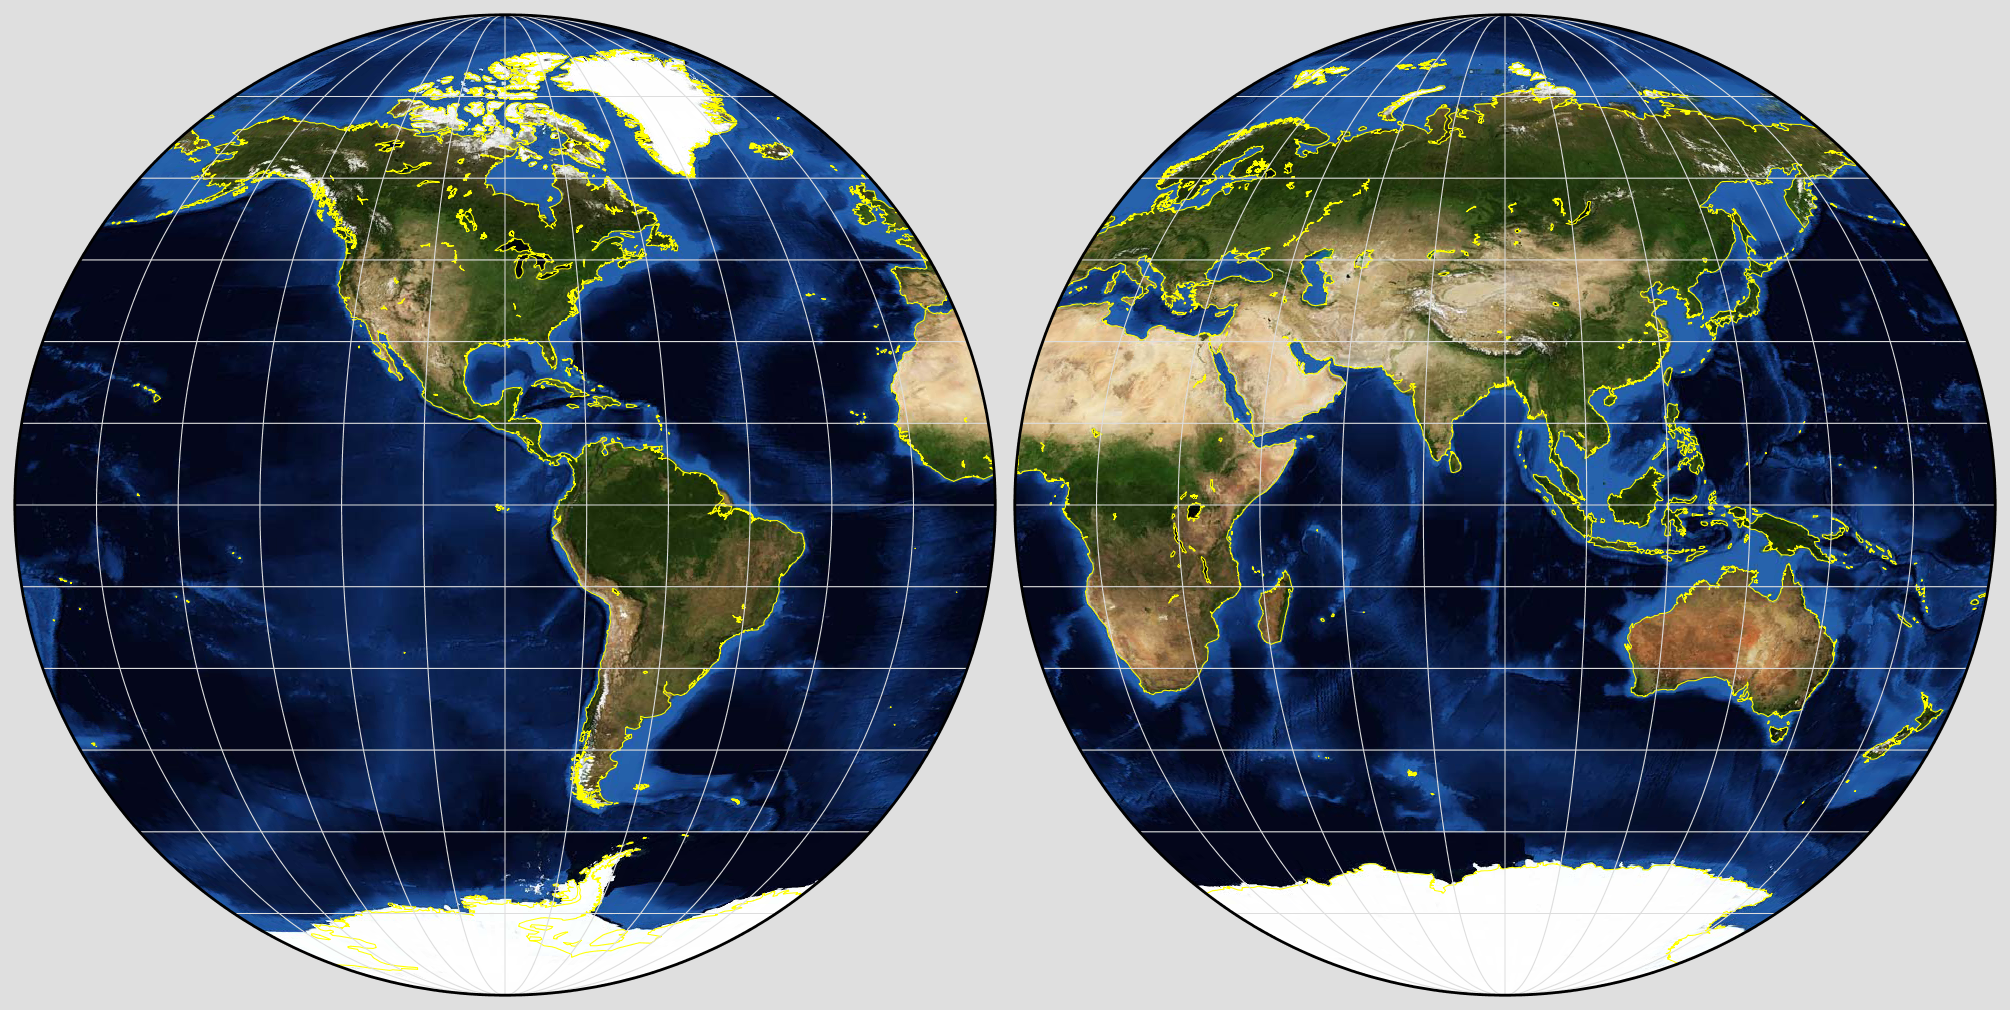 NASA GISS: G.Projector: User's Guide: Projection List on peters projection map vs mercator, accurate scale map of globe, flat map and globe, peters projection map with scale, peters map of the world, peters projection of the world,